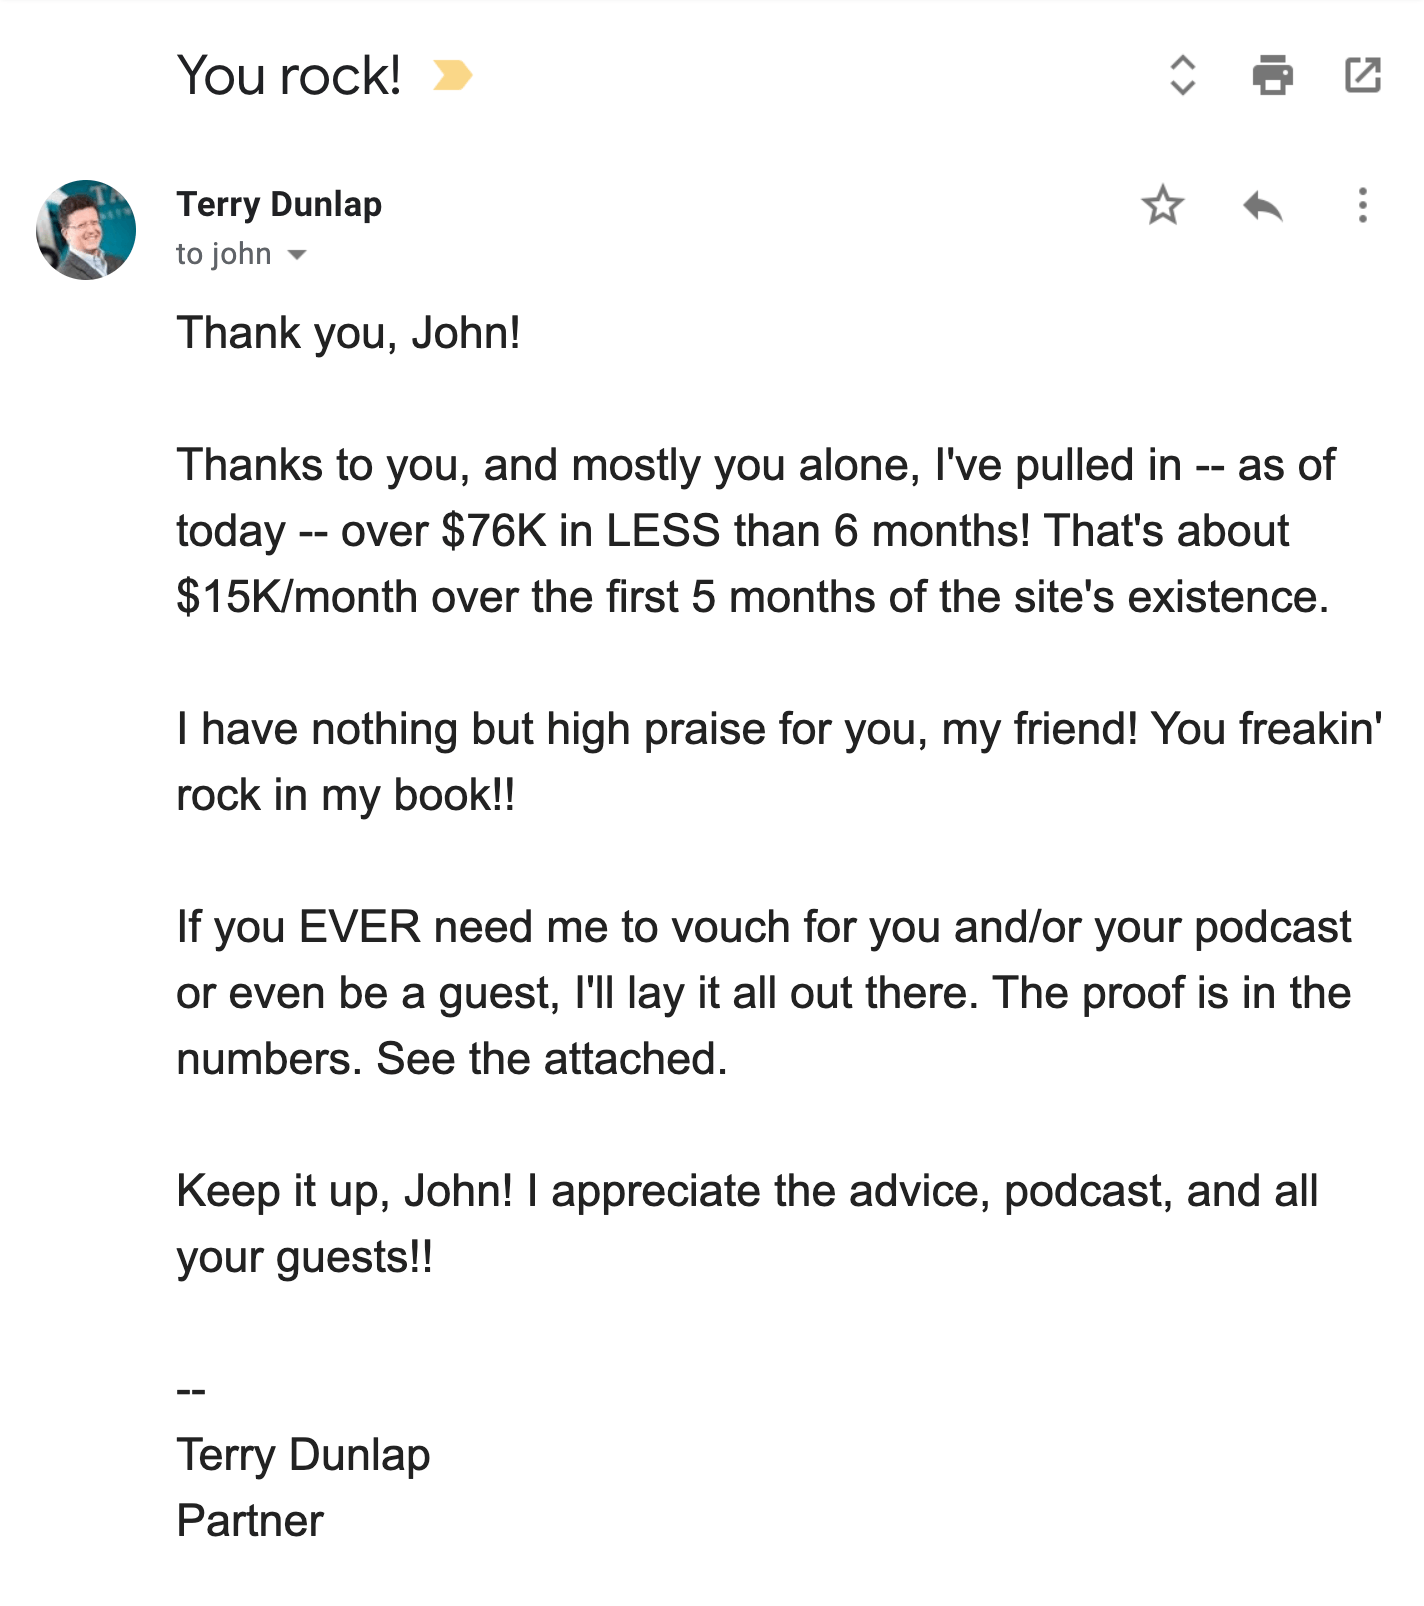 Email Copywriting Testimonial from Terry Dunlap: Thanks to you, and mostly you alone, I've pulled in -- as of today -- over $76K in LESS than 6 months! That's about $15k/month over the first 5 months of the site's existence. I have nothing but high praise for you, my friend! You freakin' rock in my book!!